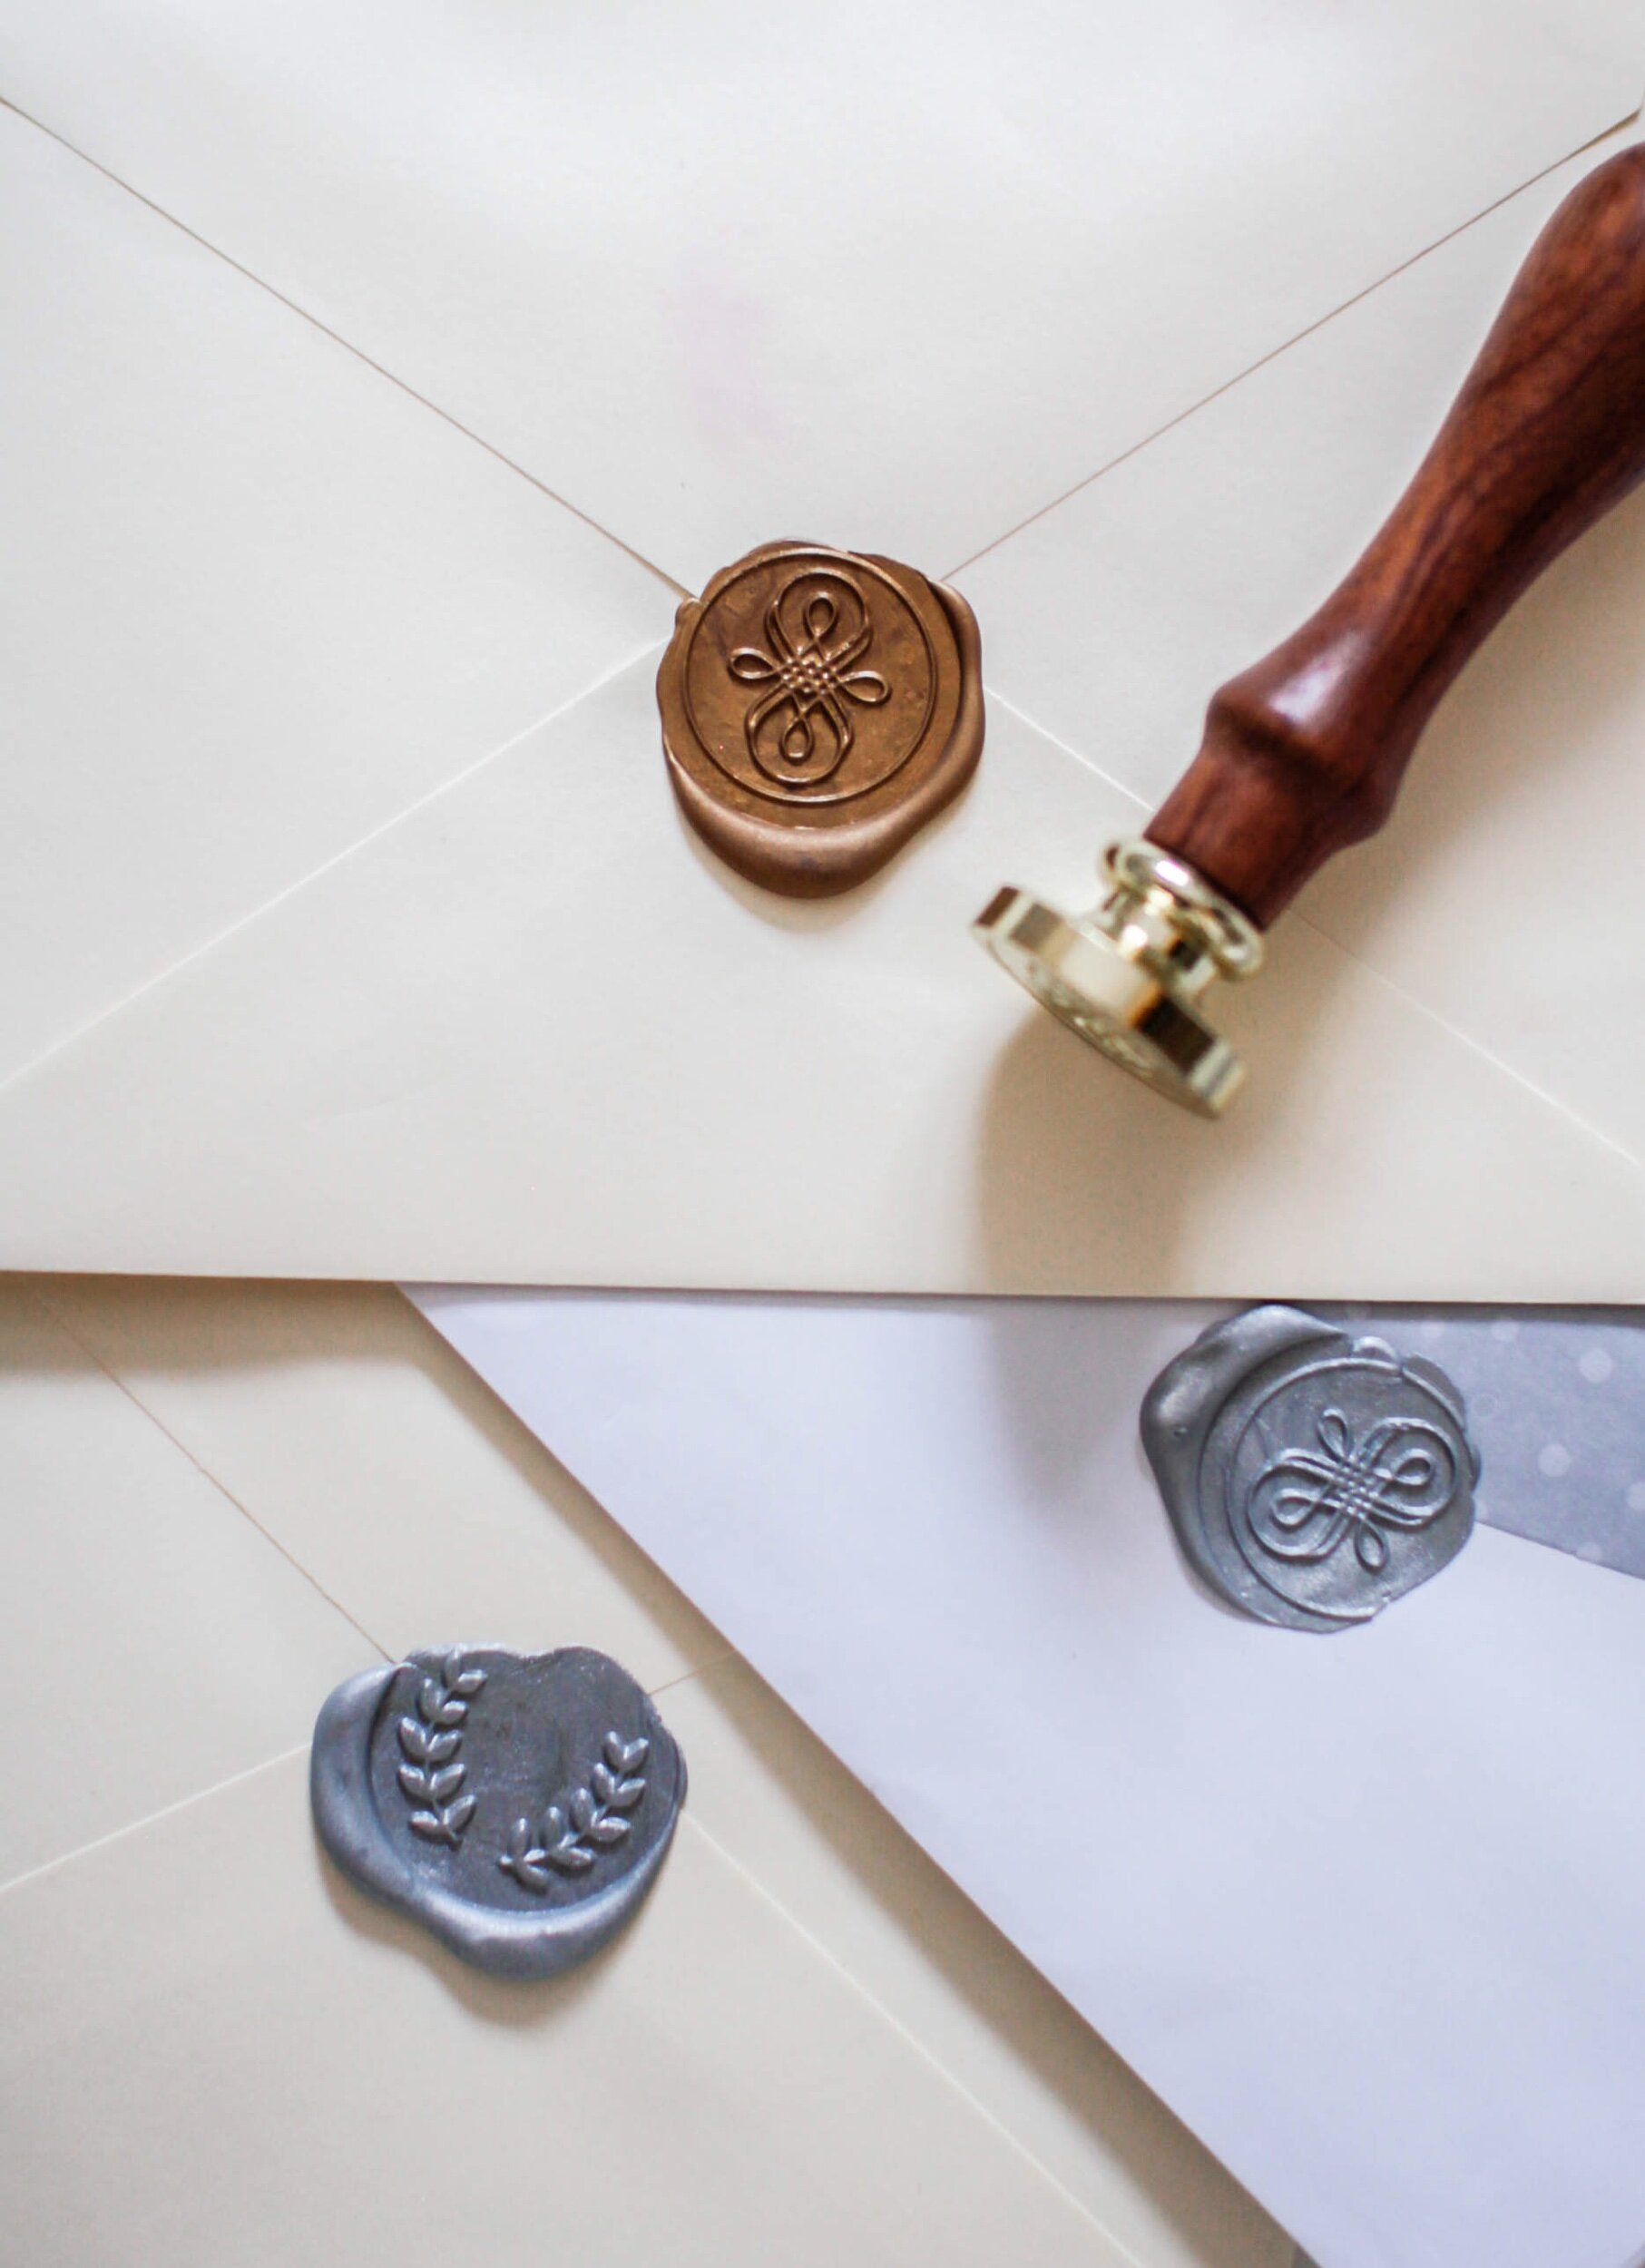 Letter writing craft with wax seal